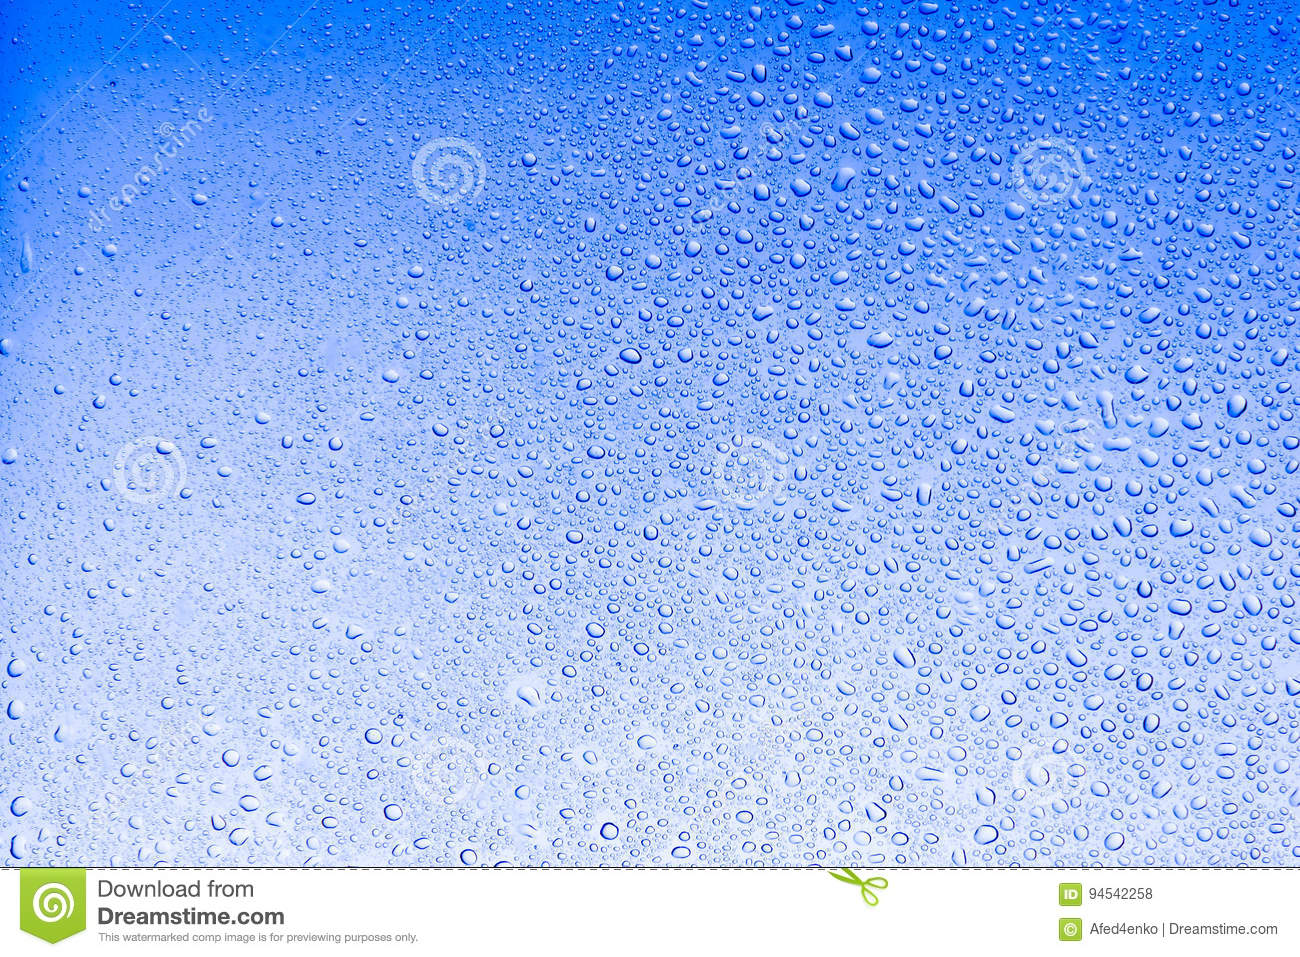 Download Sky Light Blue Color Water Drops Abstract Background Stock Photo - Image of surface, background: 94542258